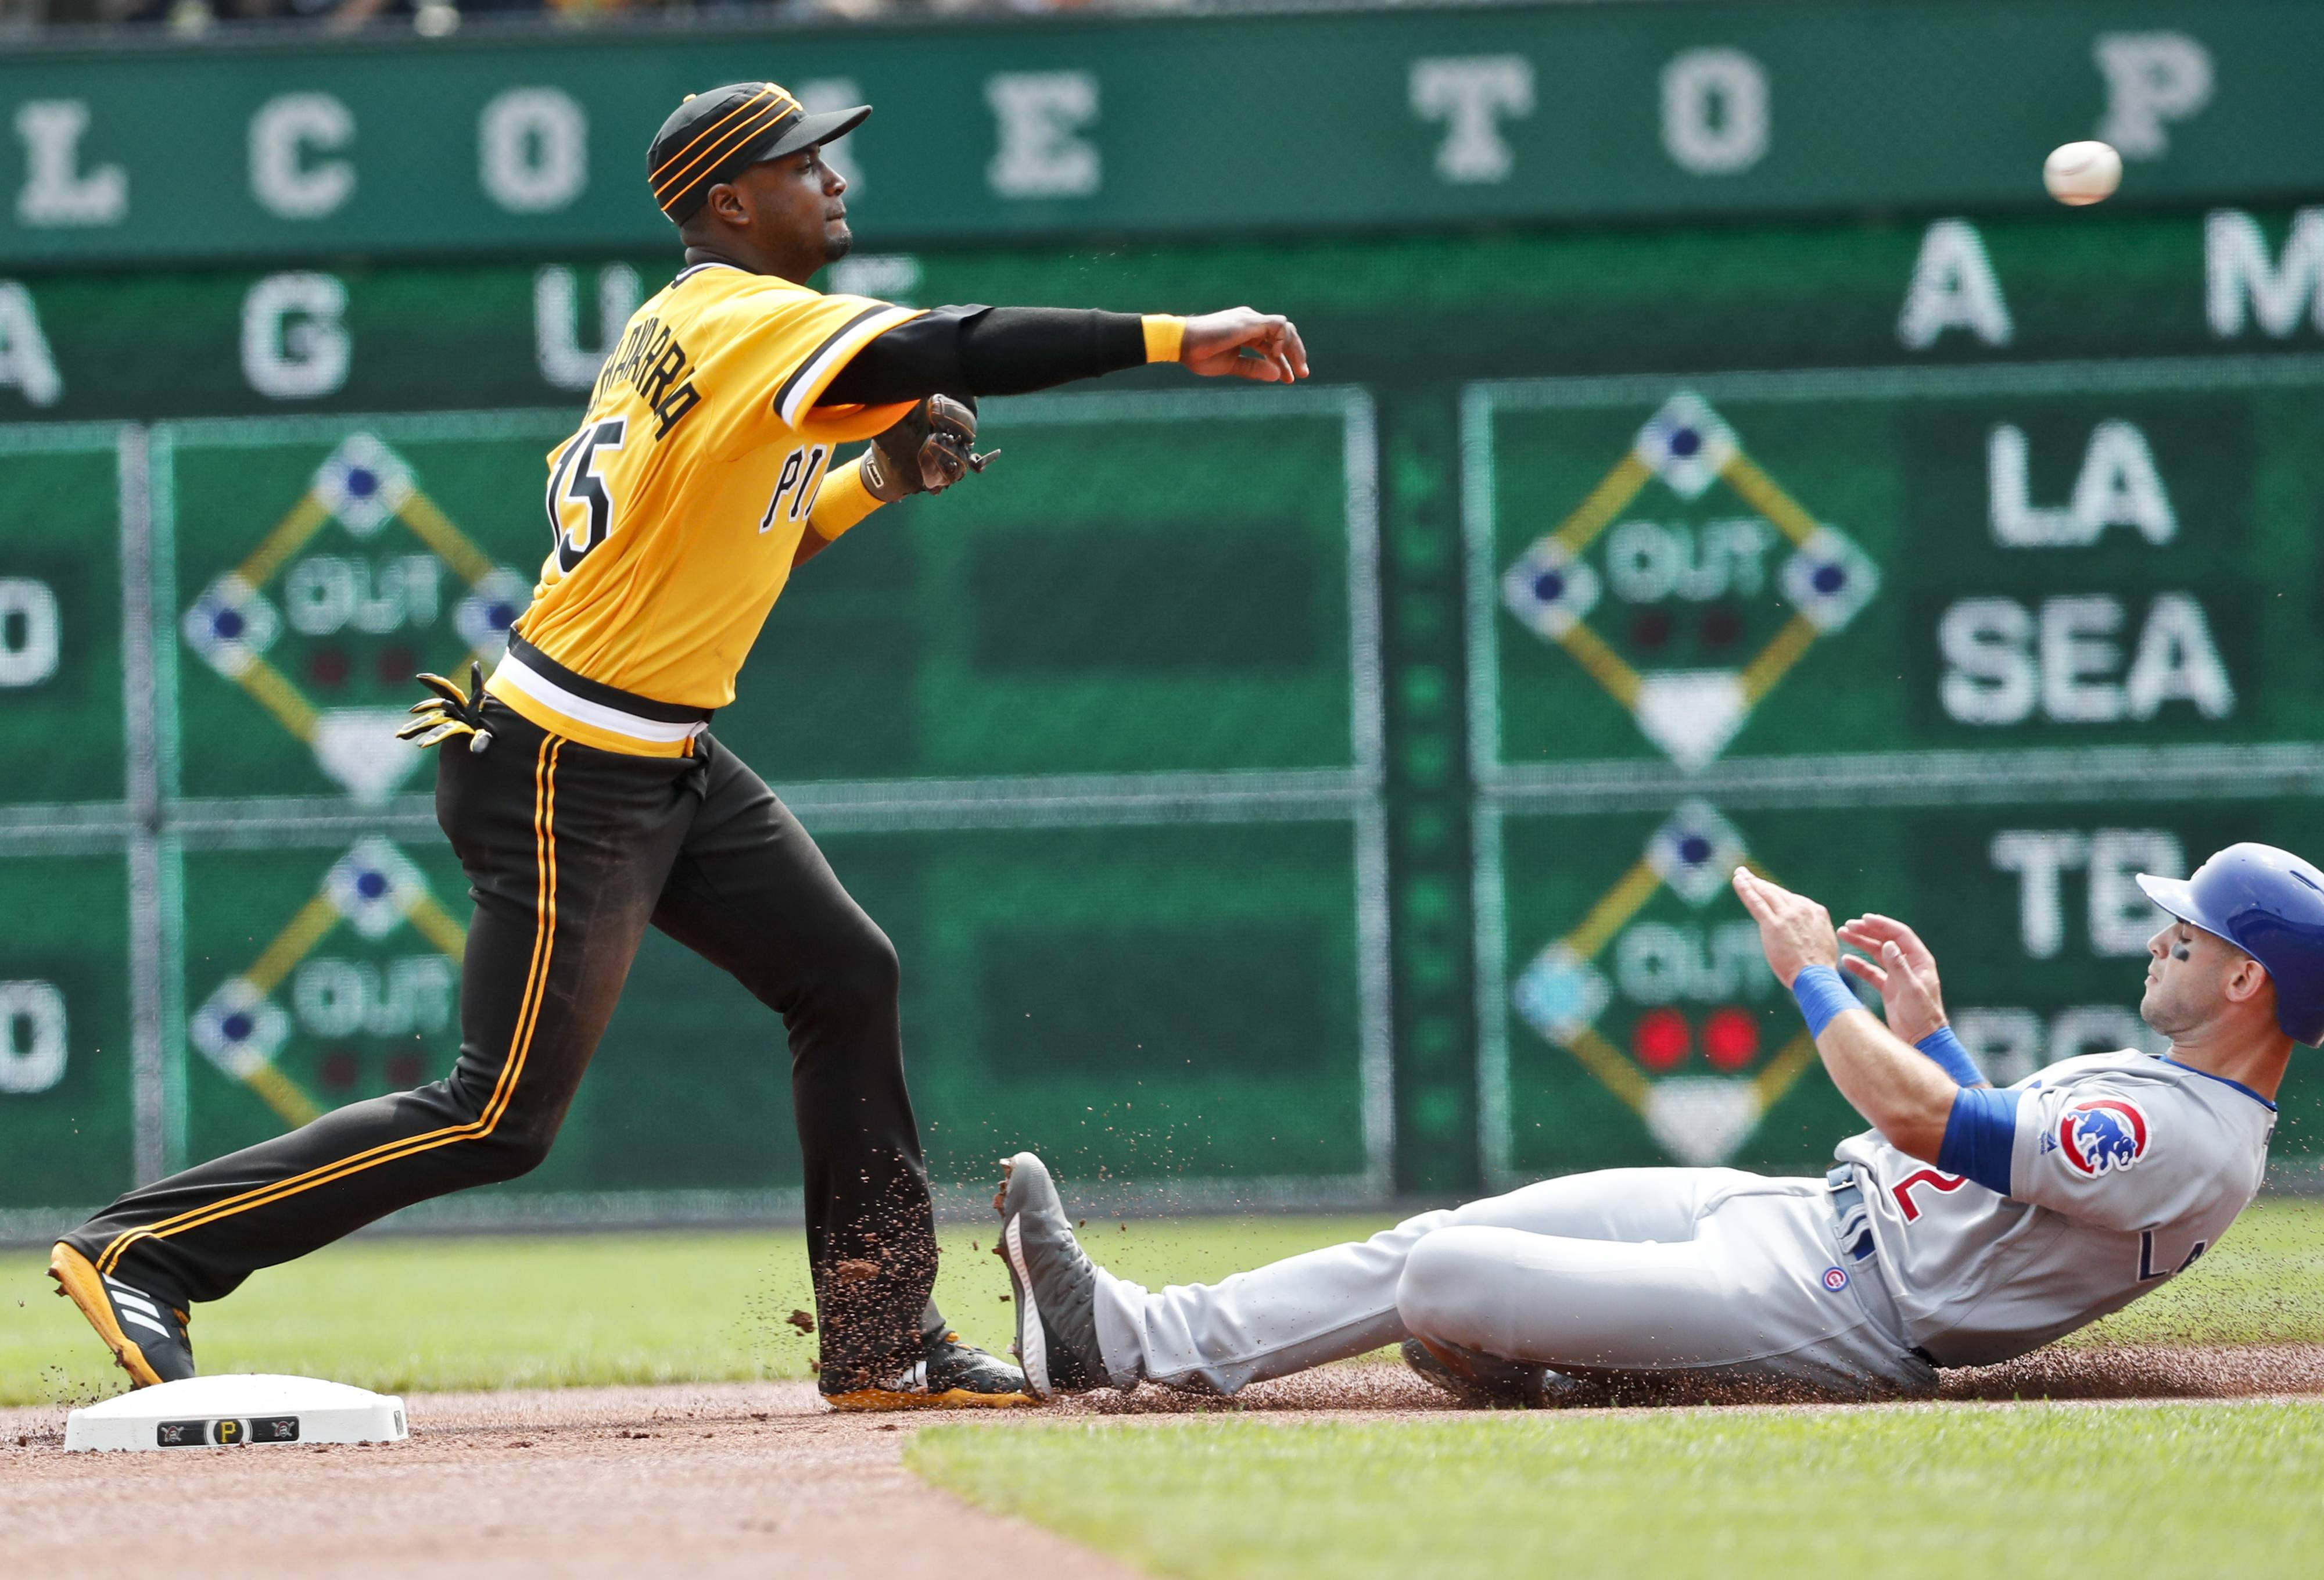 Pittsburgh Pirates shortstop Adeiny Hechavarria, left, relays on to to first after forcing Chicago Cubs' Tommy La Stella out at second to complete the double play on Ben Zobrist in the first inning of a baseball game, Sunday, Aug. 19, 2018, in Pittsburgh.